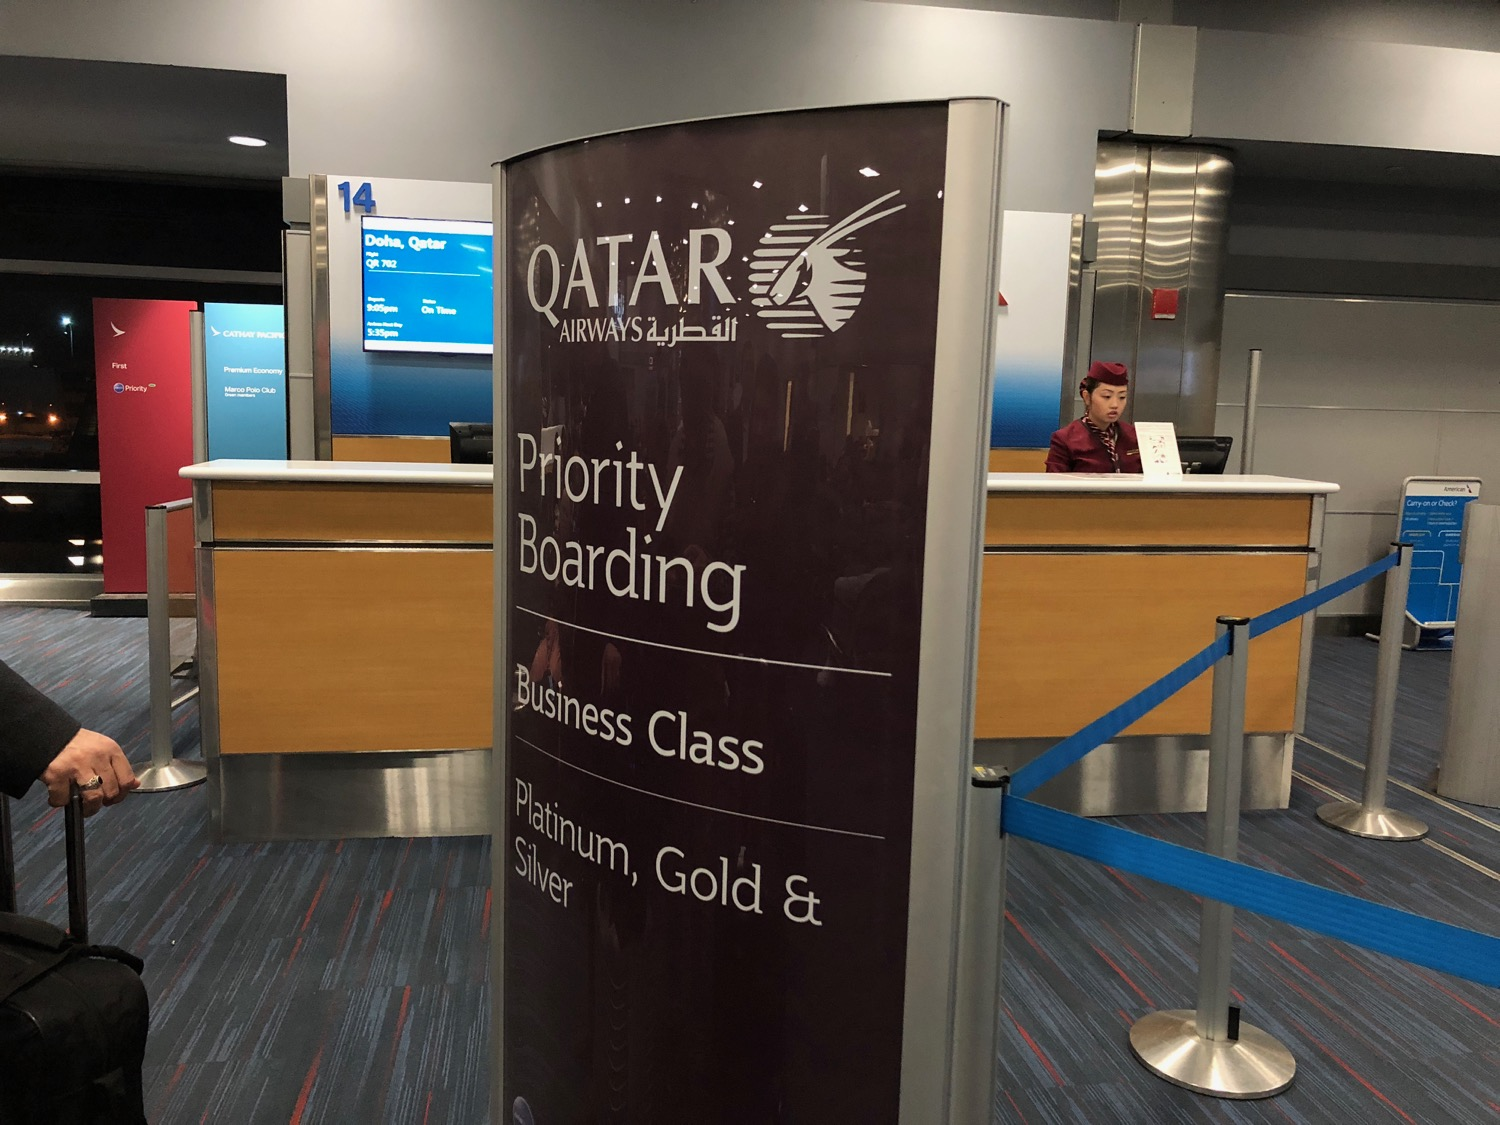 The Best Ways to Book Qatar's QSuites with Points & Miles [2019]